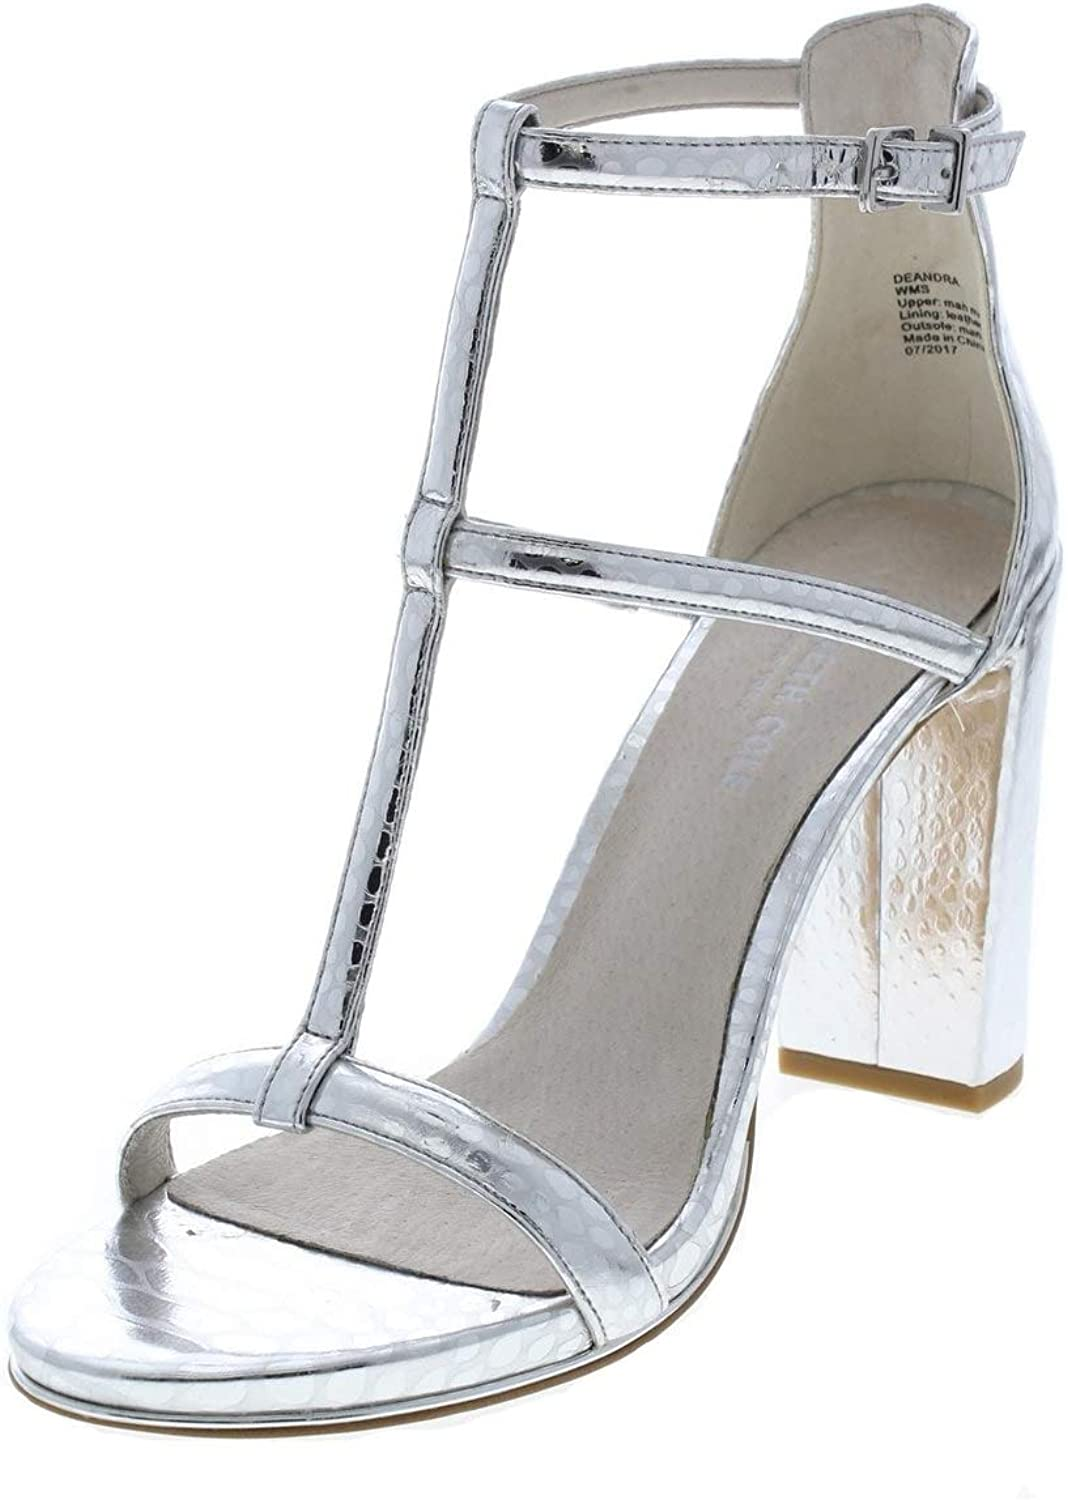 Kenneth Cole New York Deandra Metallic Leather Ankle Strap Heel - Women's